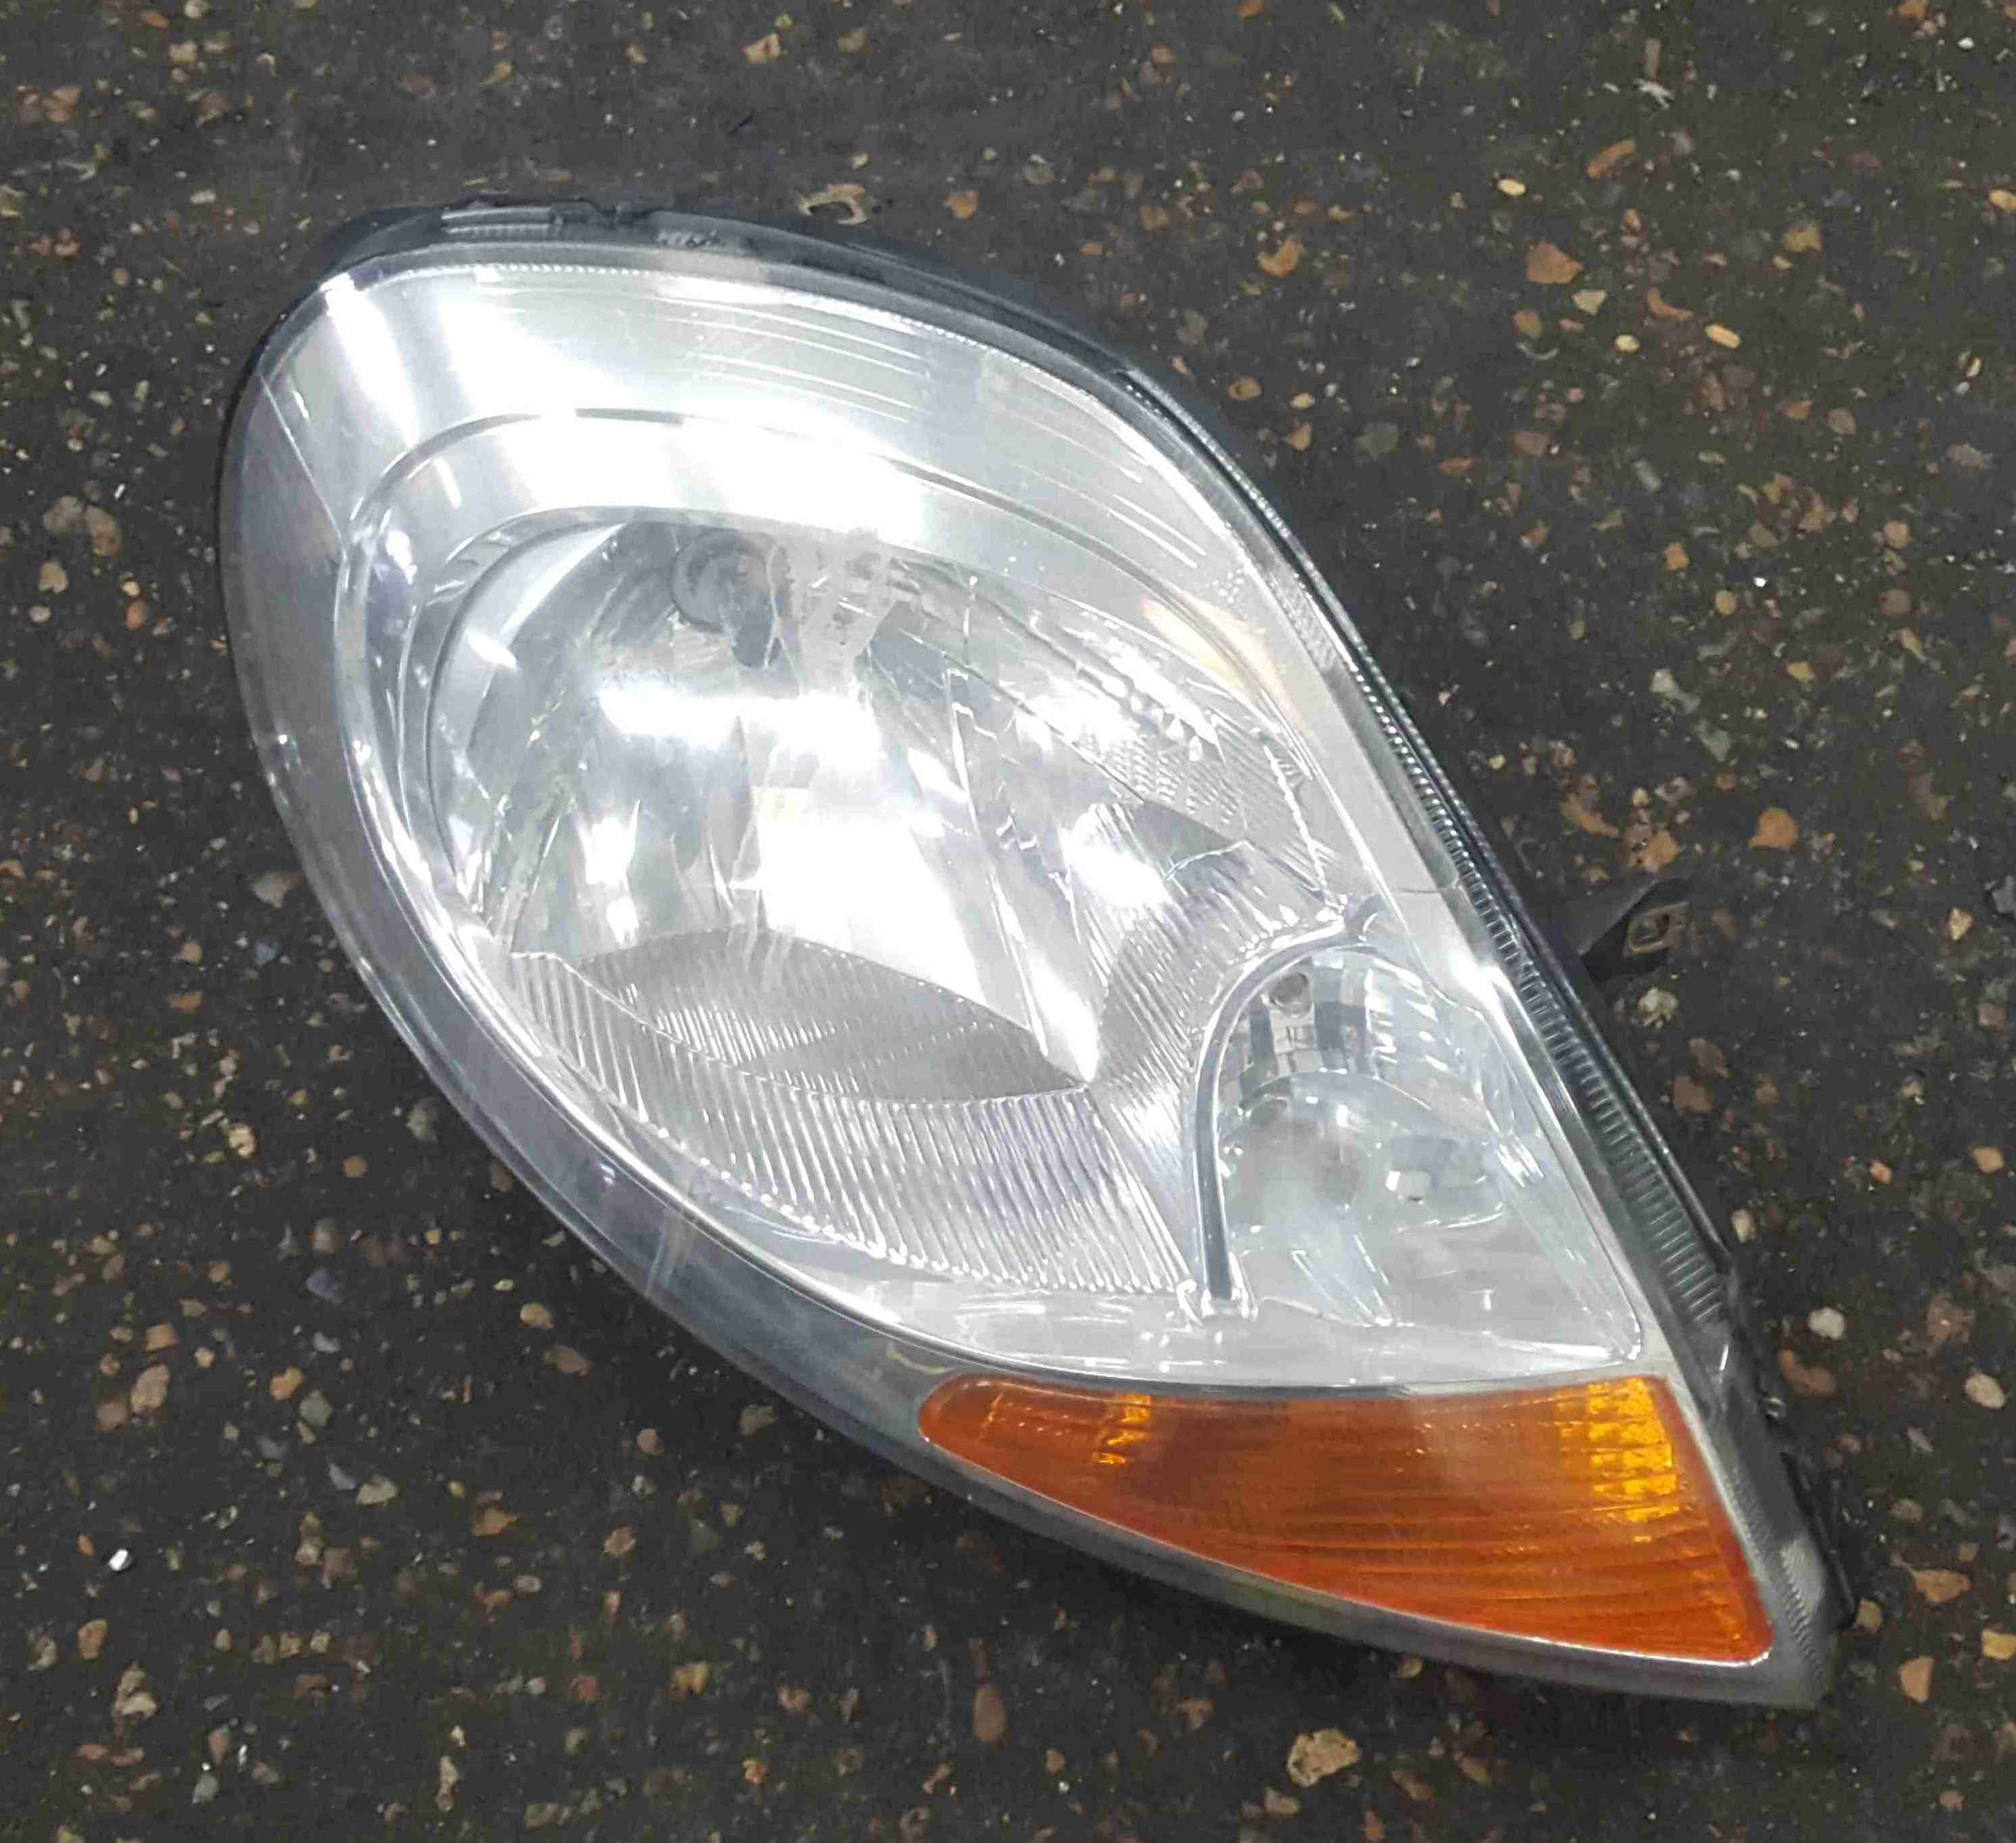 Renault Trafic 2006-2014 Drivers OSF Front Headlight 8200701361